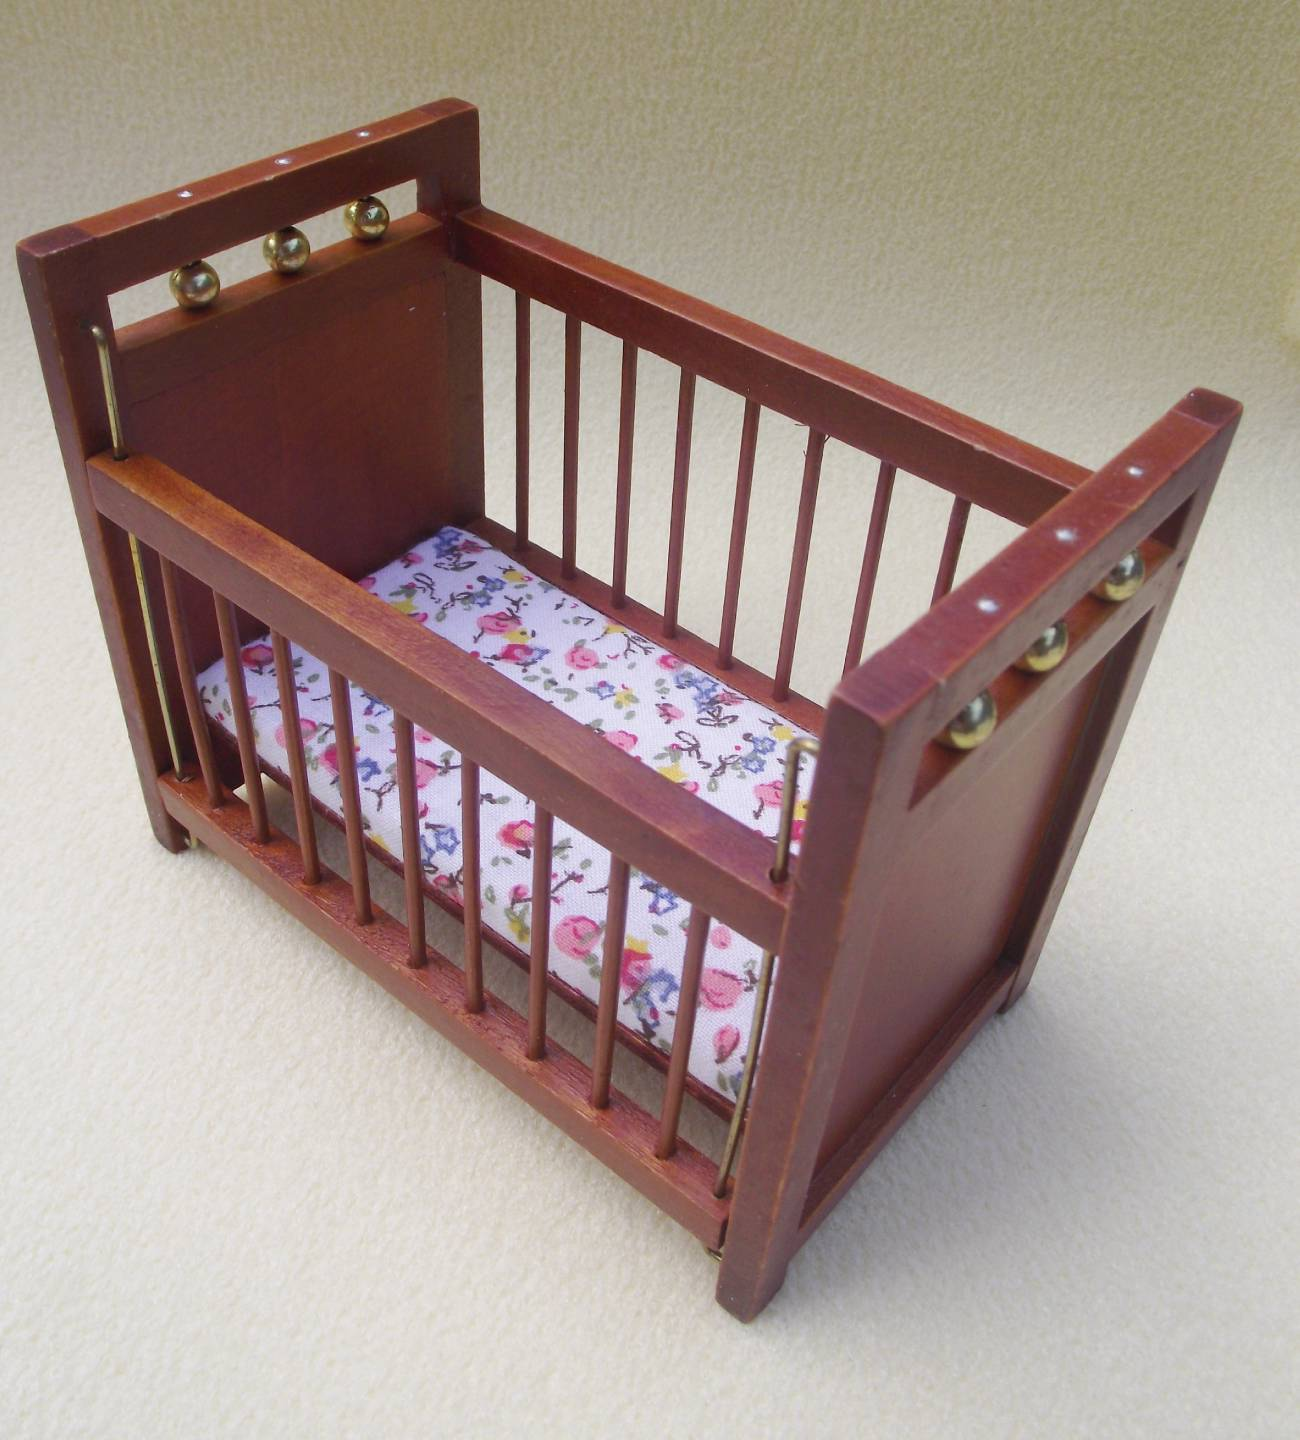 Miniature dolls house furniture 12th scale wooden baby cot with drop side 016 ebay Wooden baby doll furniture